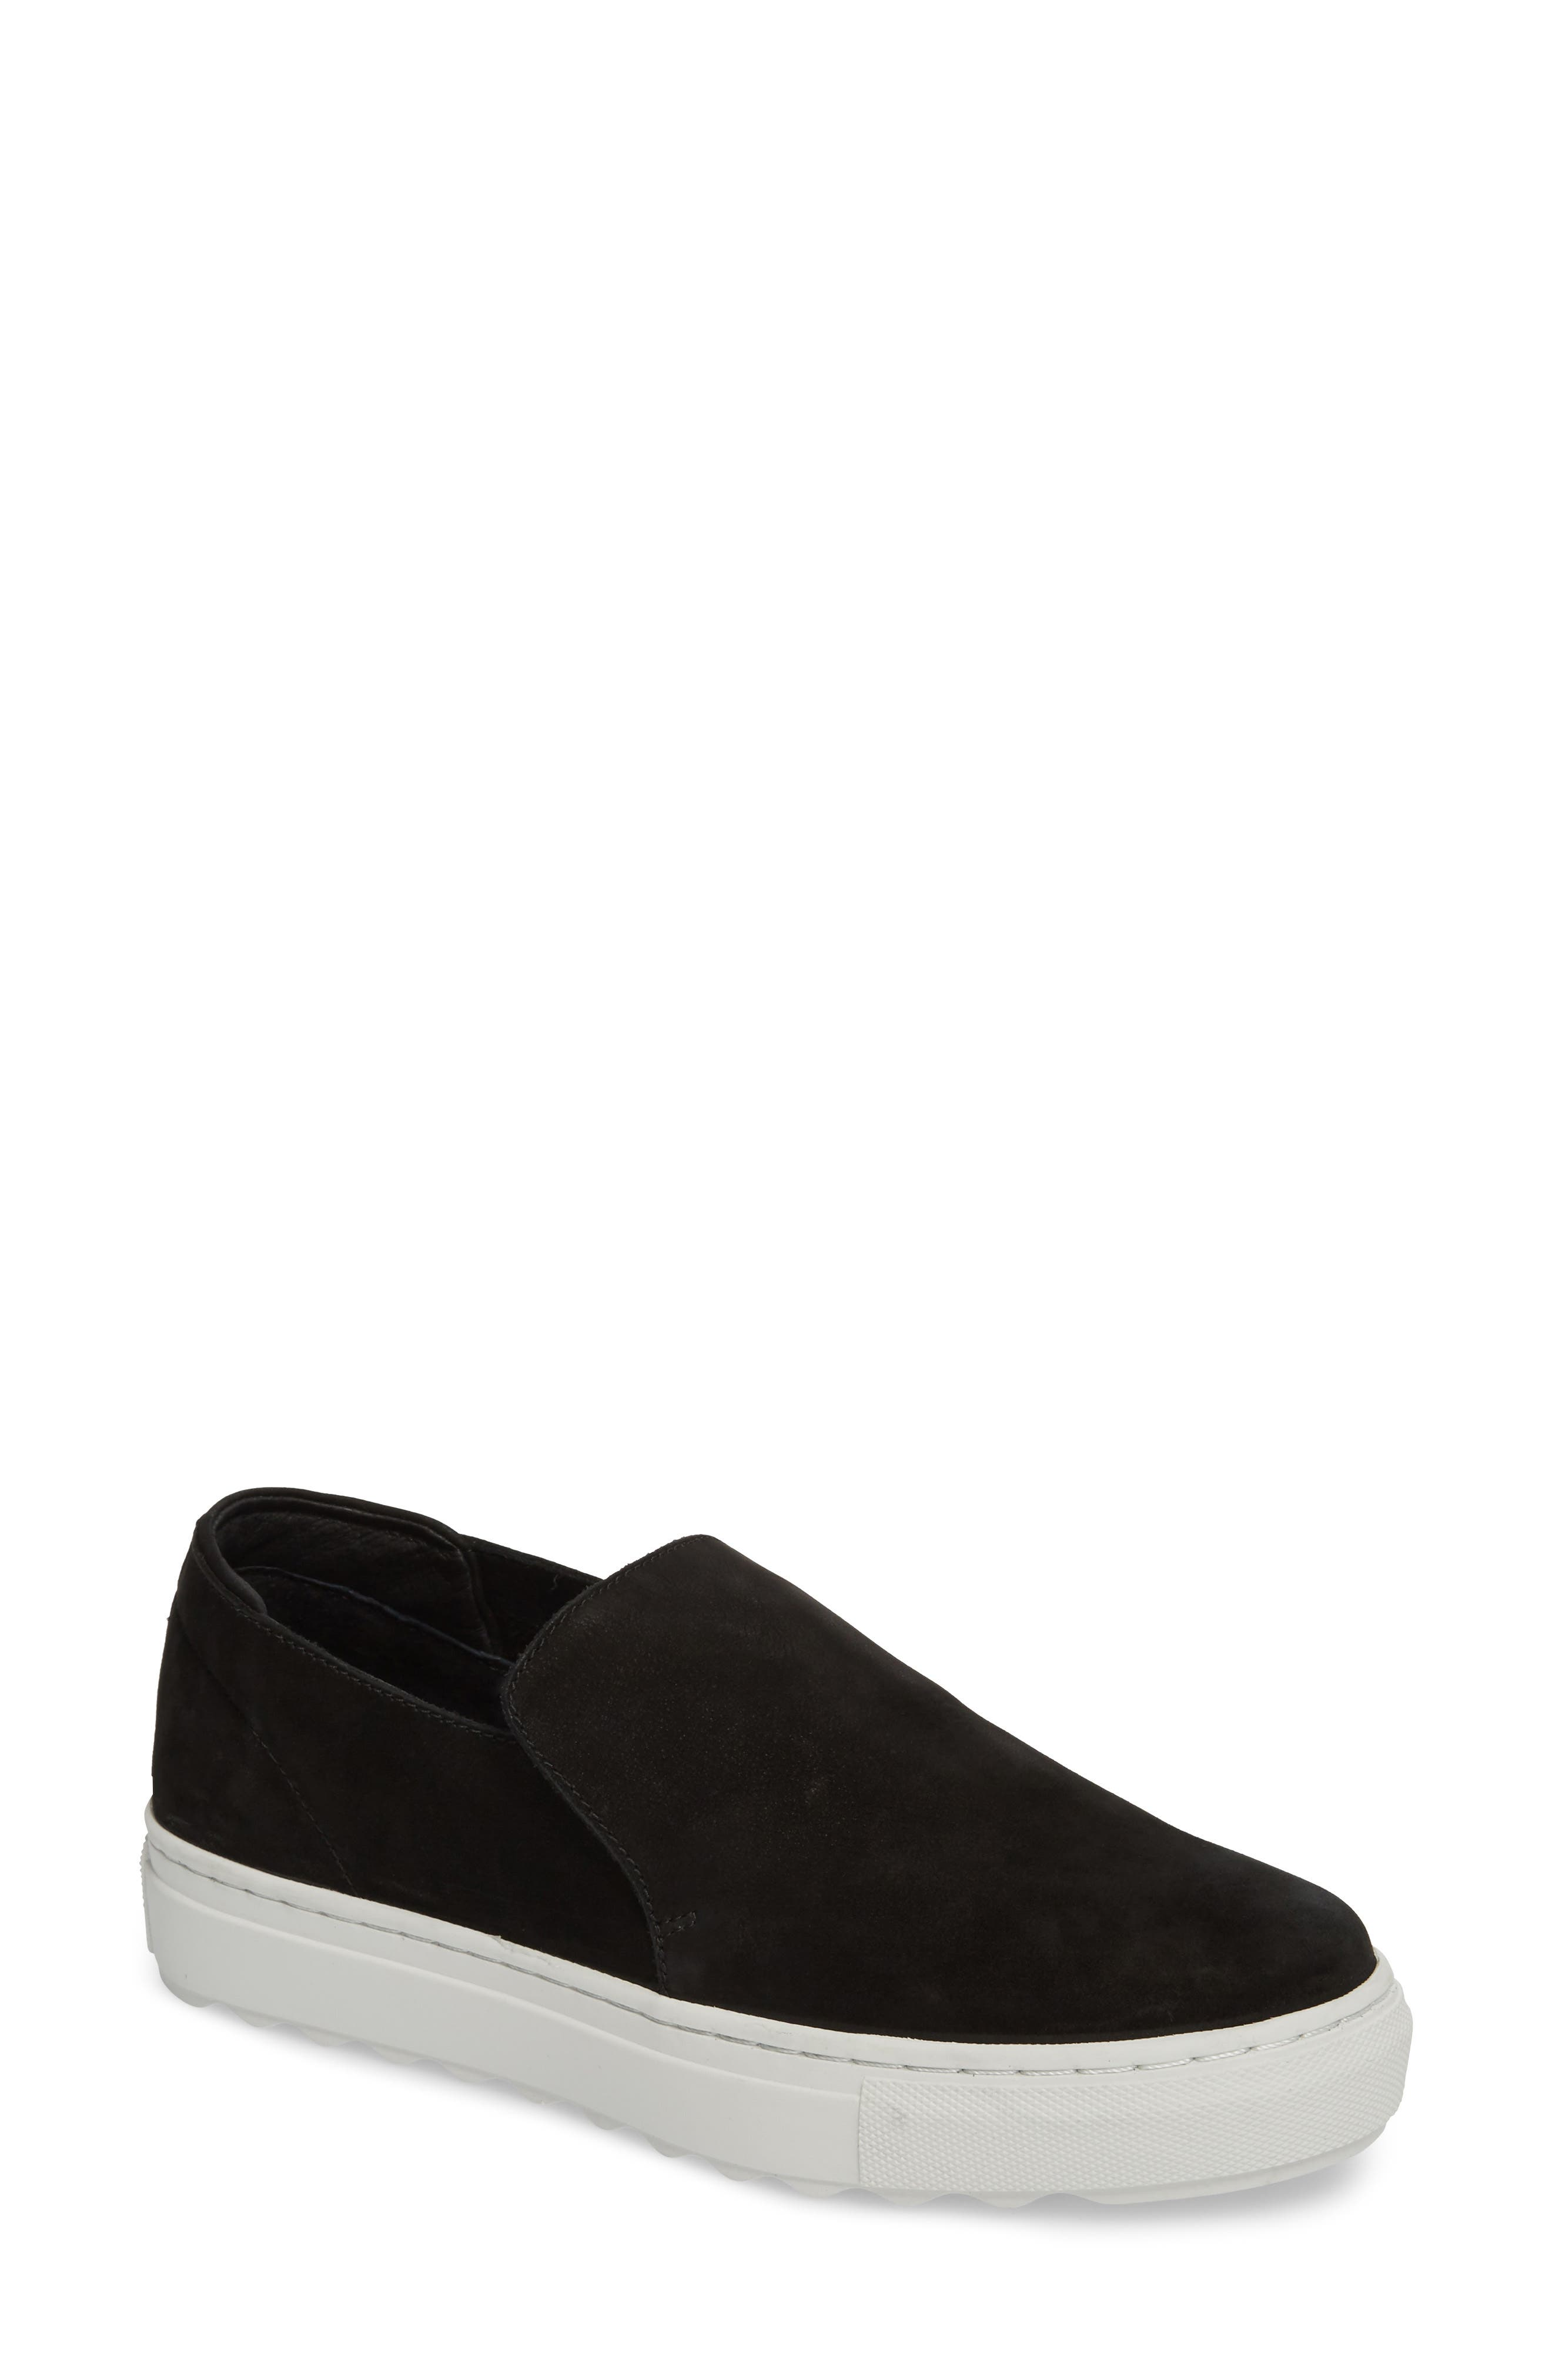 Perrie Platform Slip-On,                             Main thumbnail 1, color,